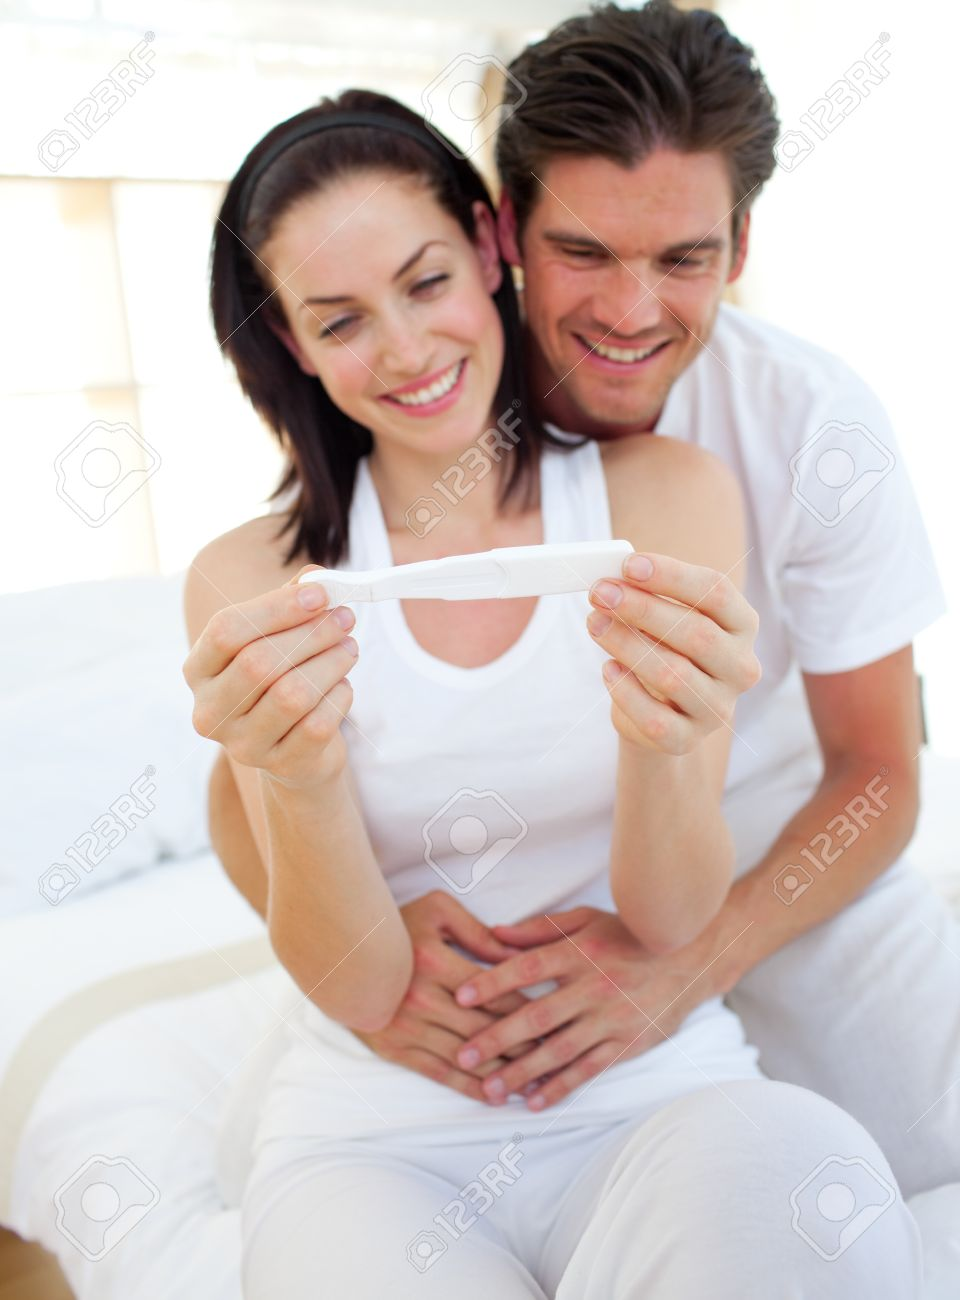 Smiling couple finding out results of a pregnancy test Stock Photo - 10246193